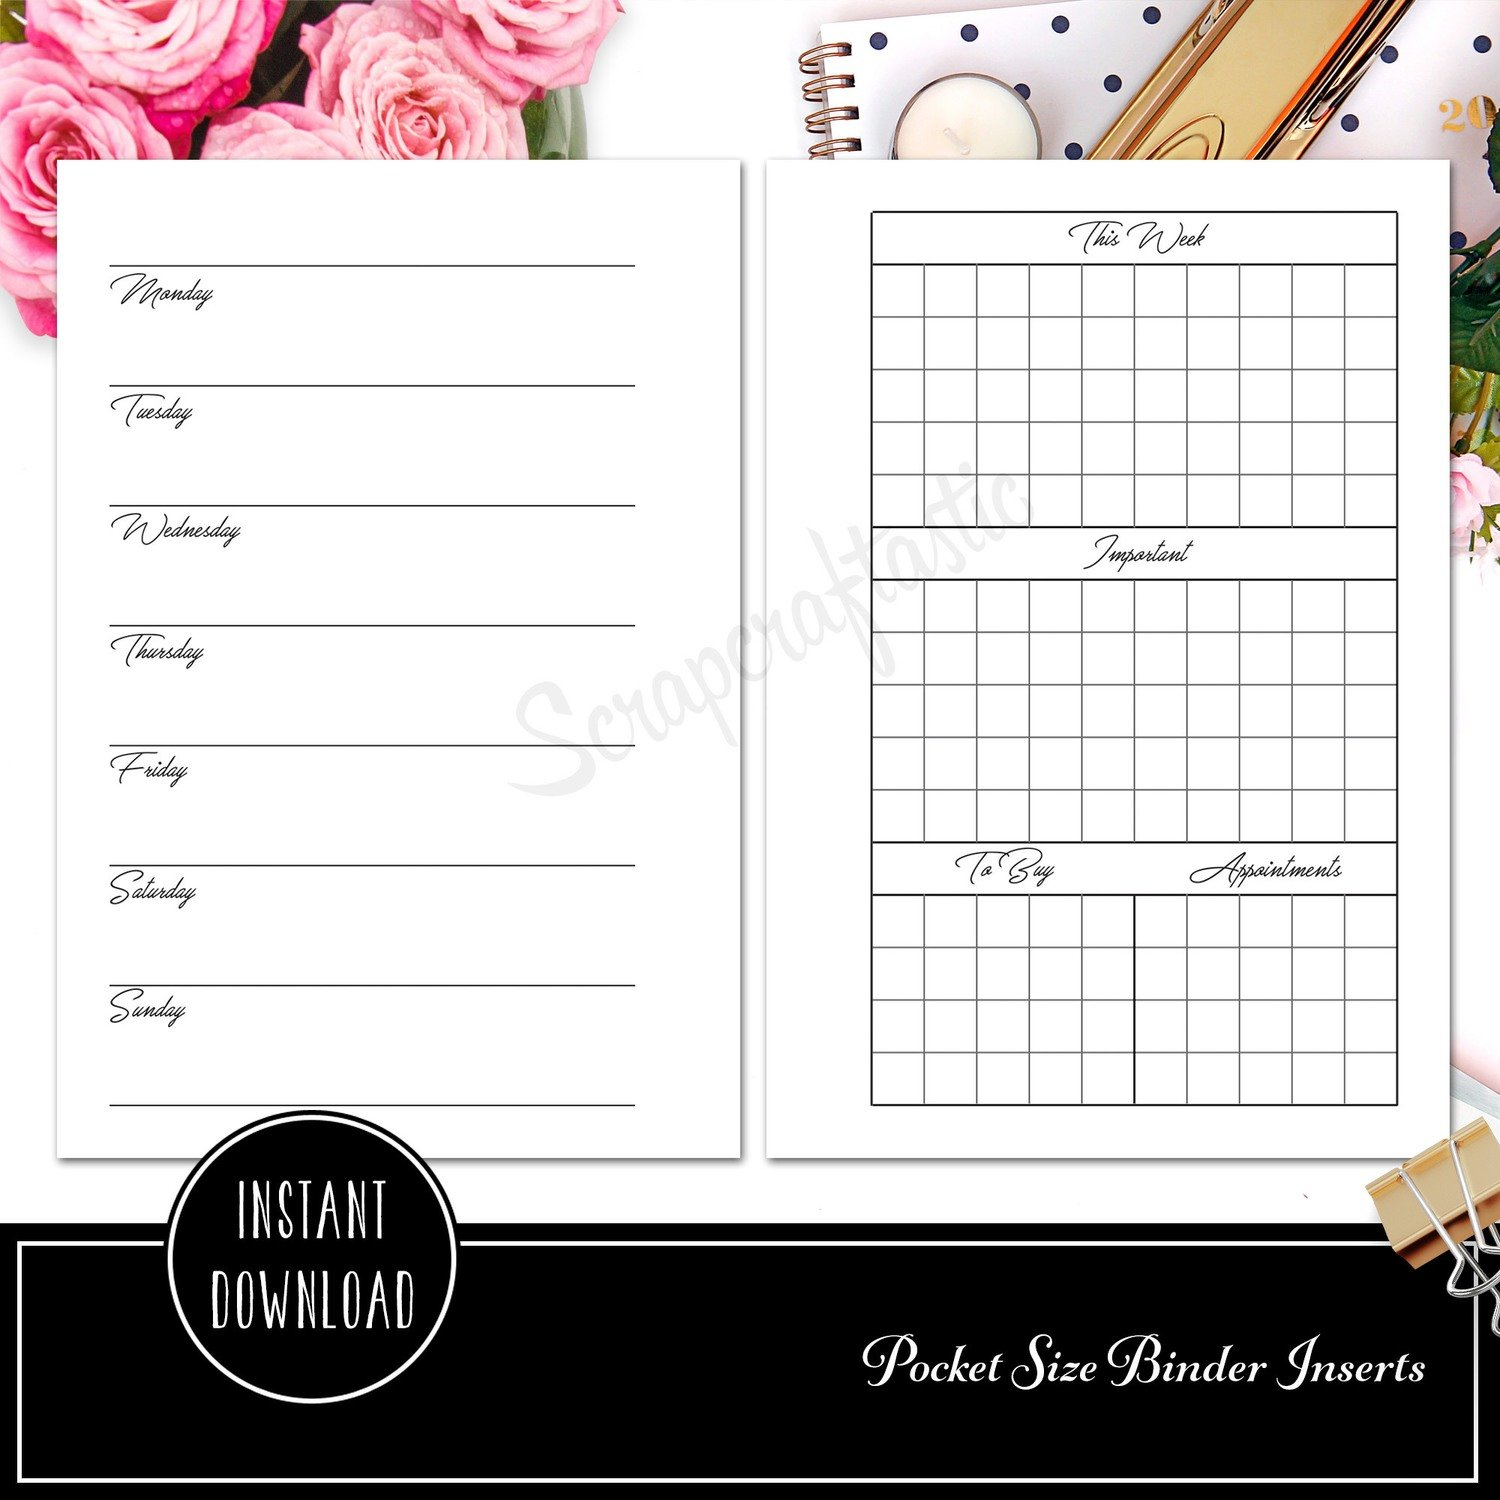 POCKET RINGS - Week on Two Pages Ring Binder Printable Insert Refill Undated